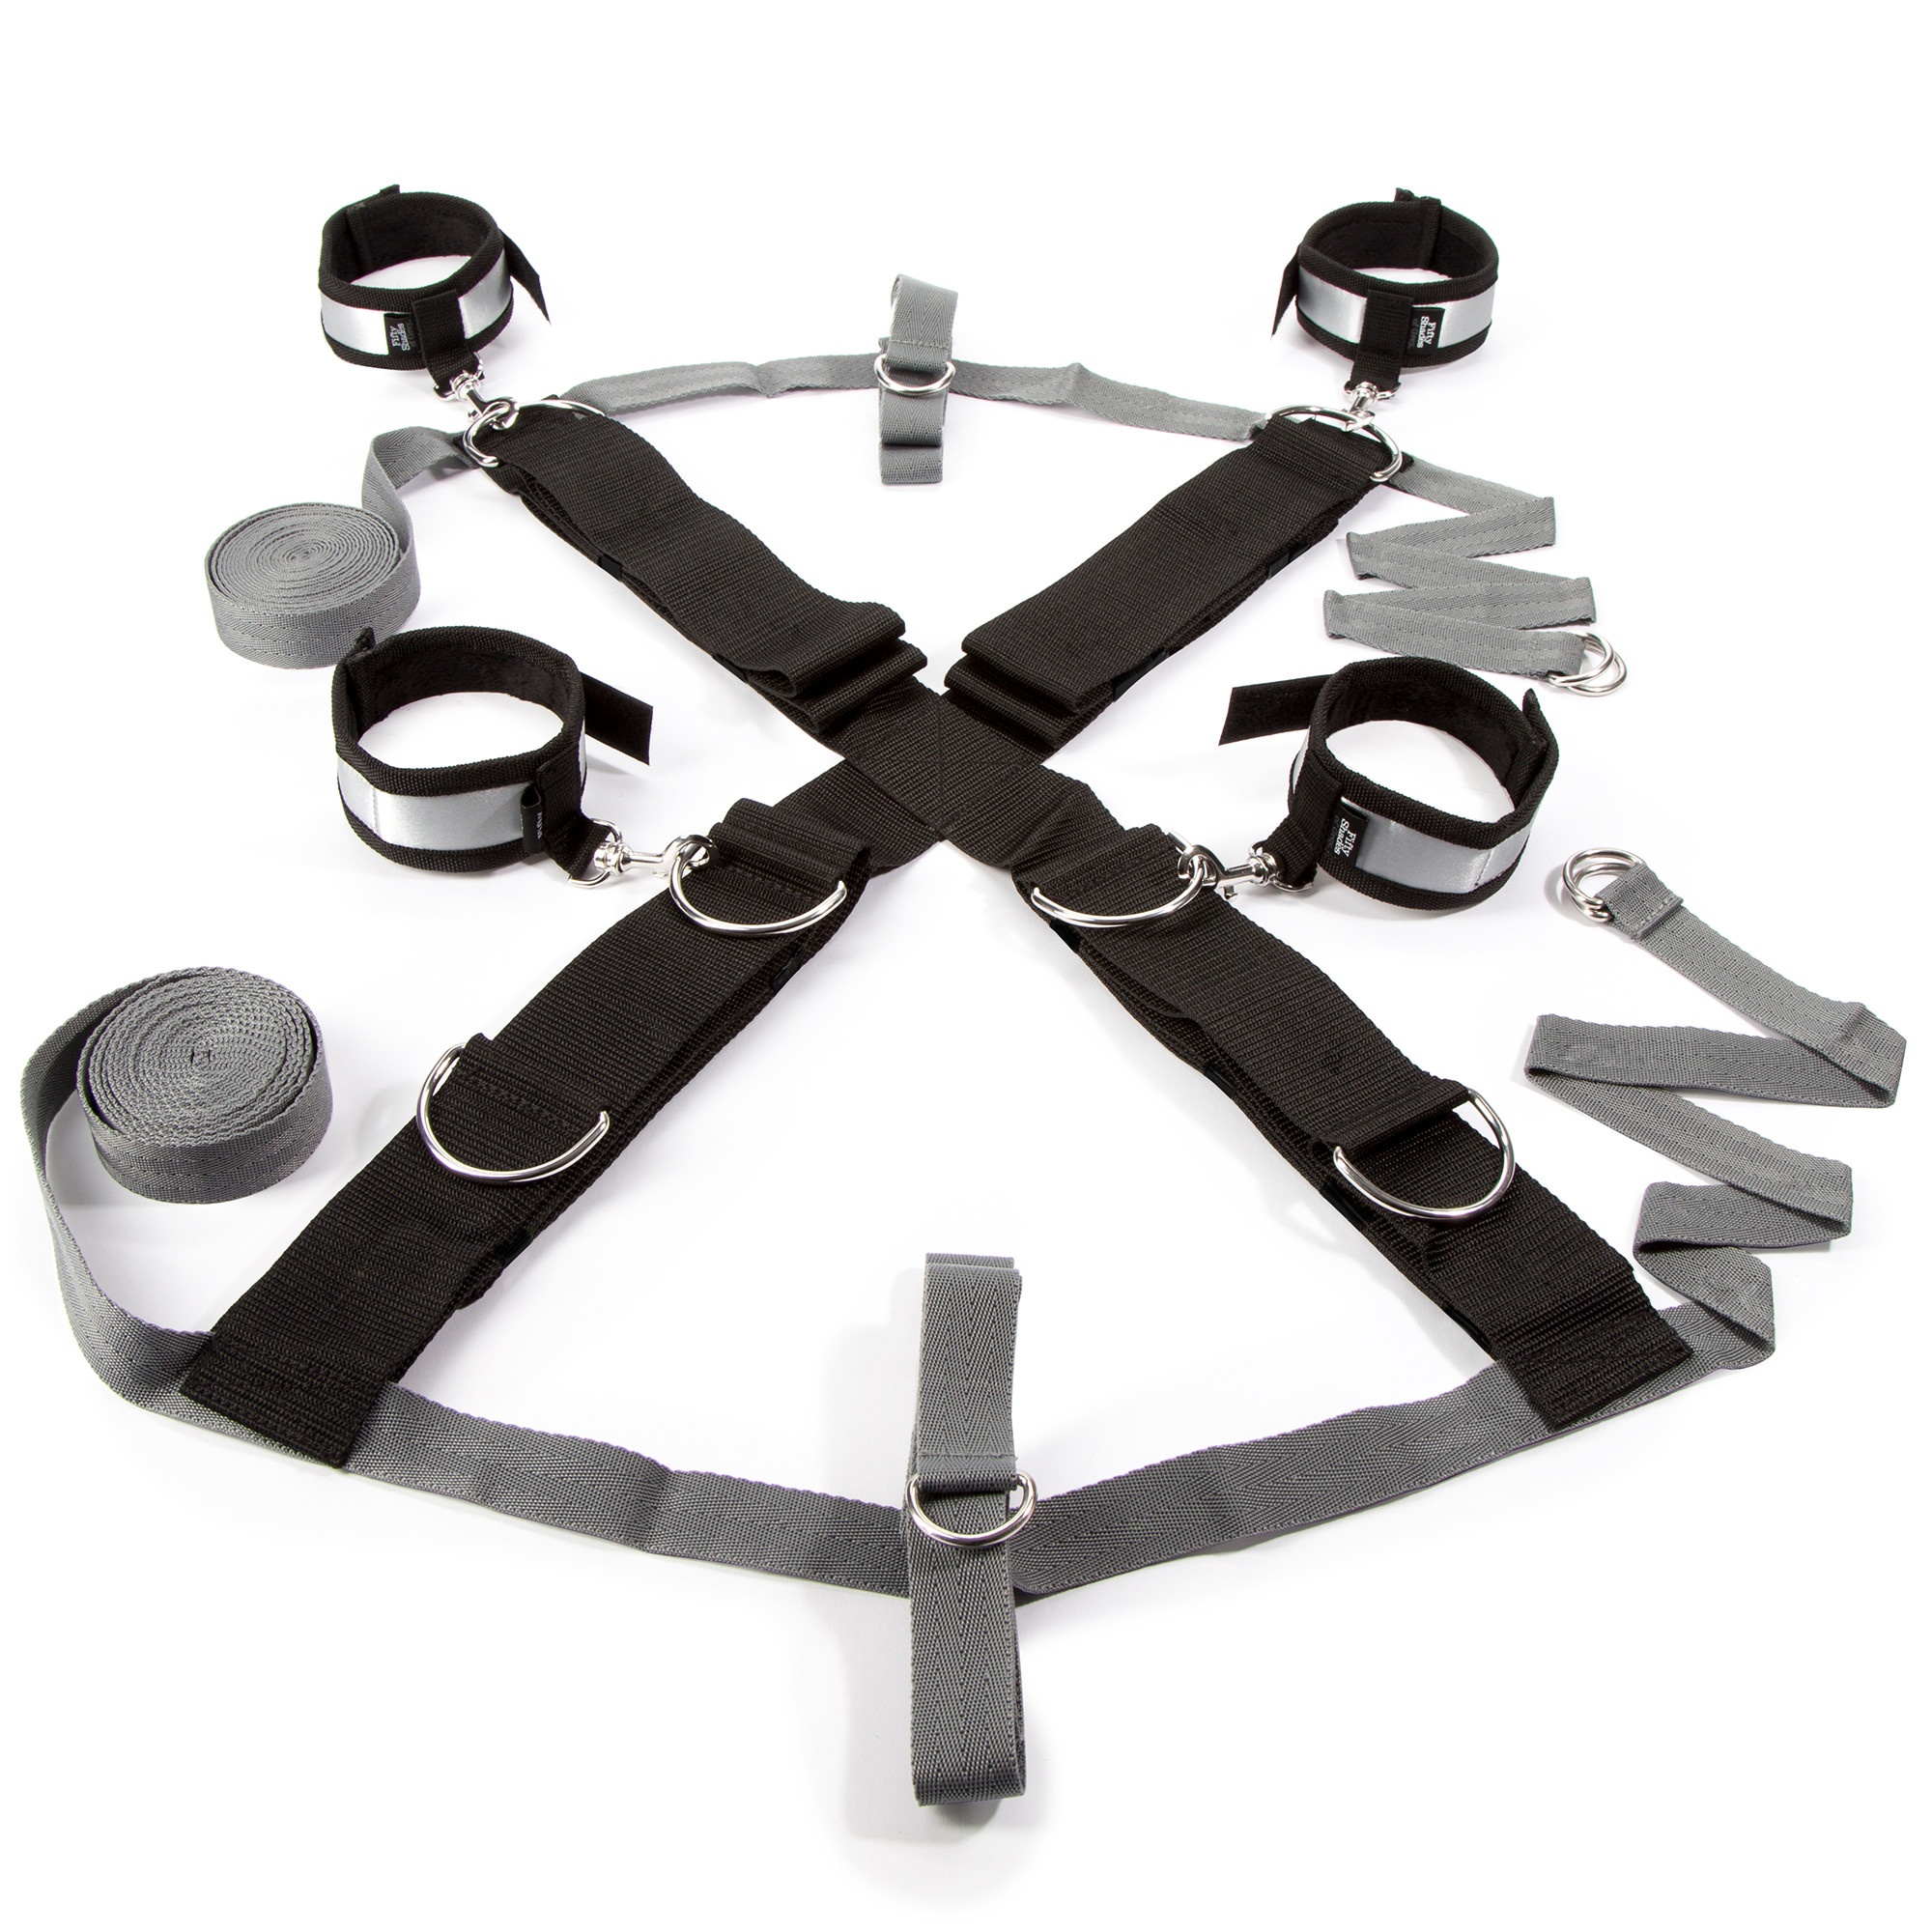 Image of 50 Shades Over The Bed Cross Restraint